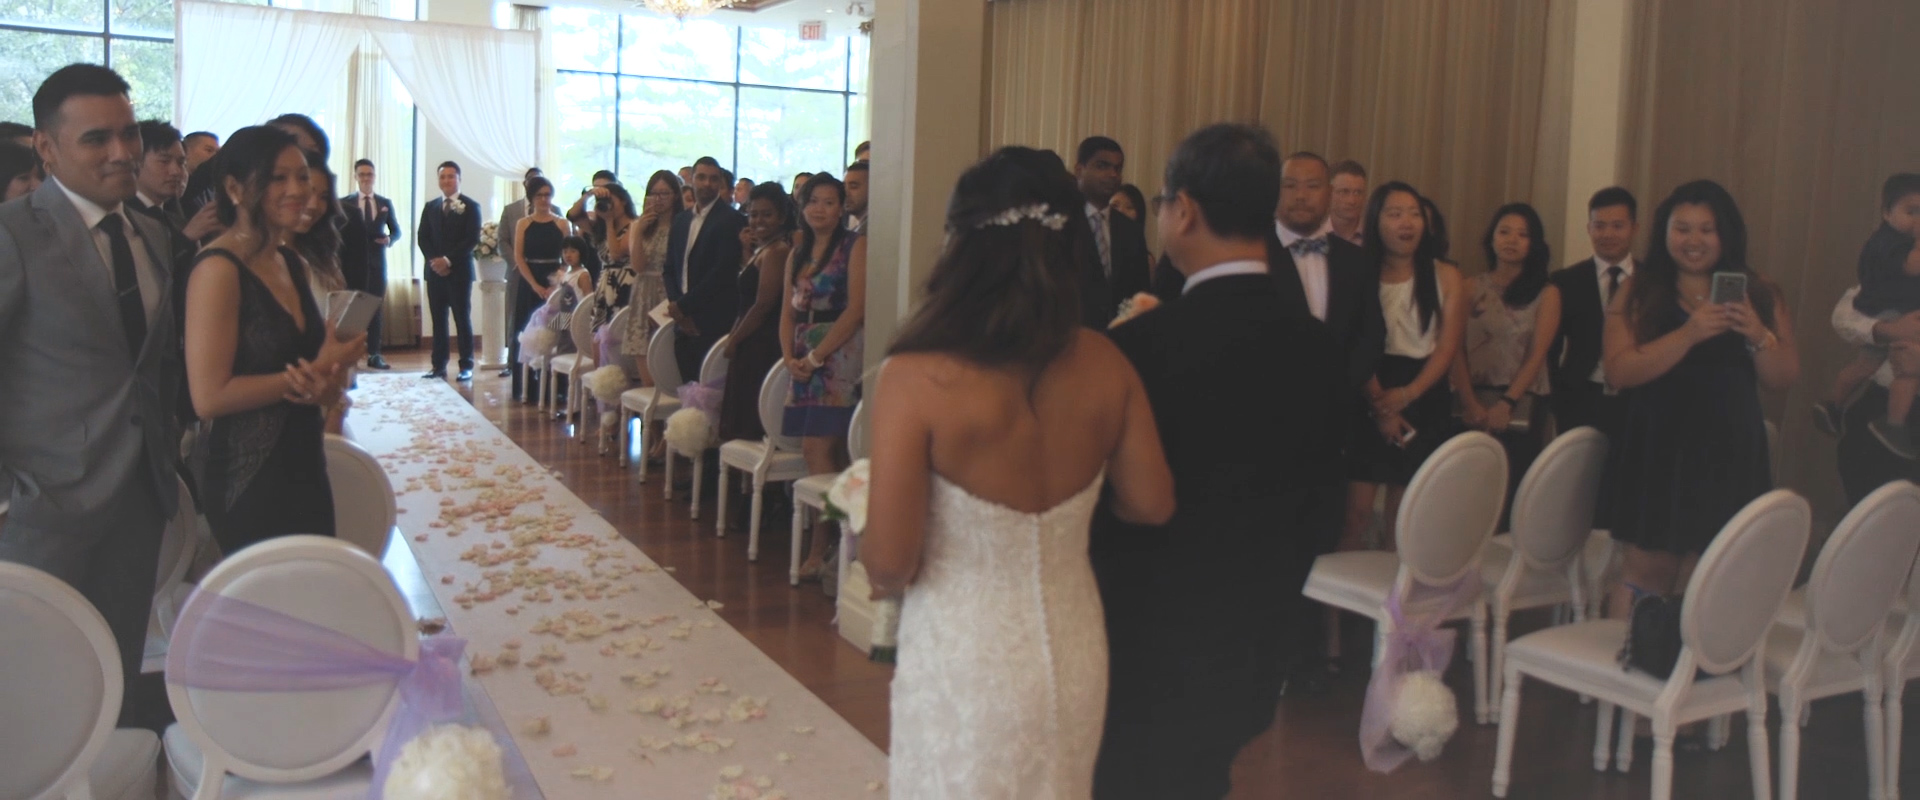 An image of a bride being walked down the aisle by her father at her wedding ceremony; taken from a Toronto Wedding Video